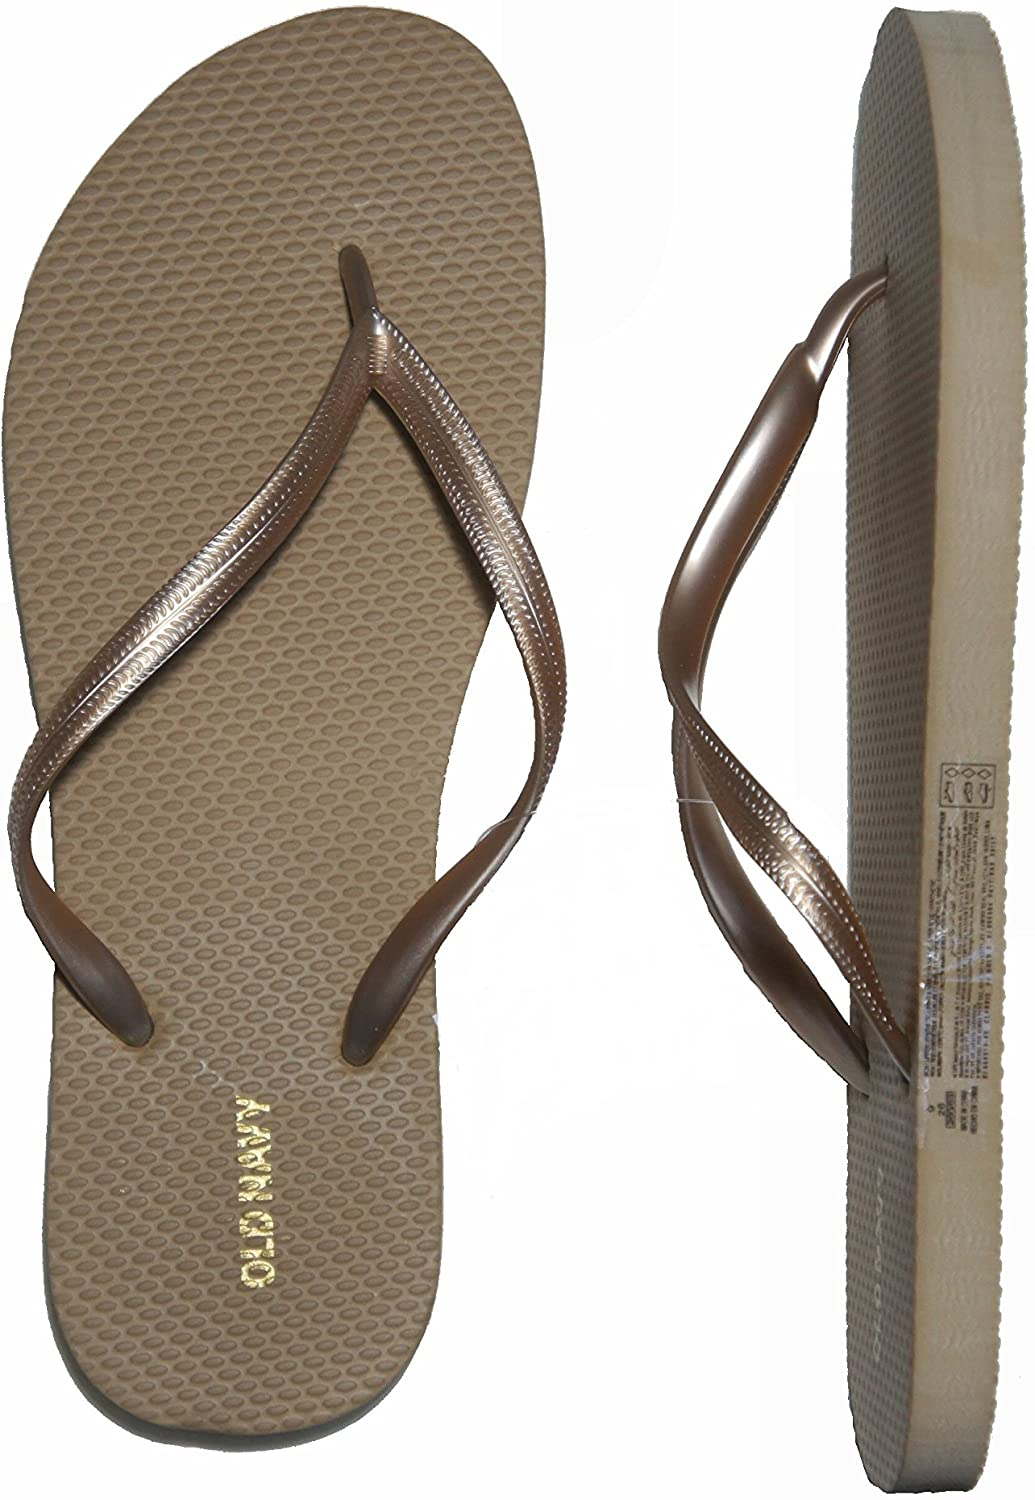 Old Navy Flip Flop Sandals for Woman, Great for Beach or Casual Wear (9, Dk.